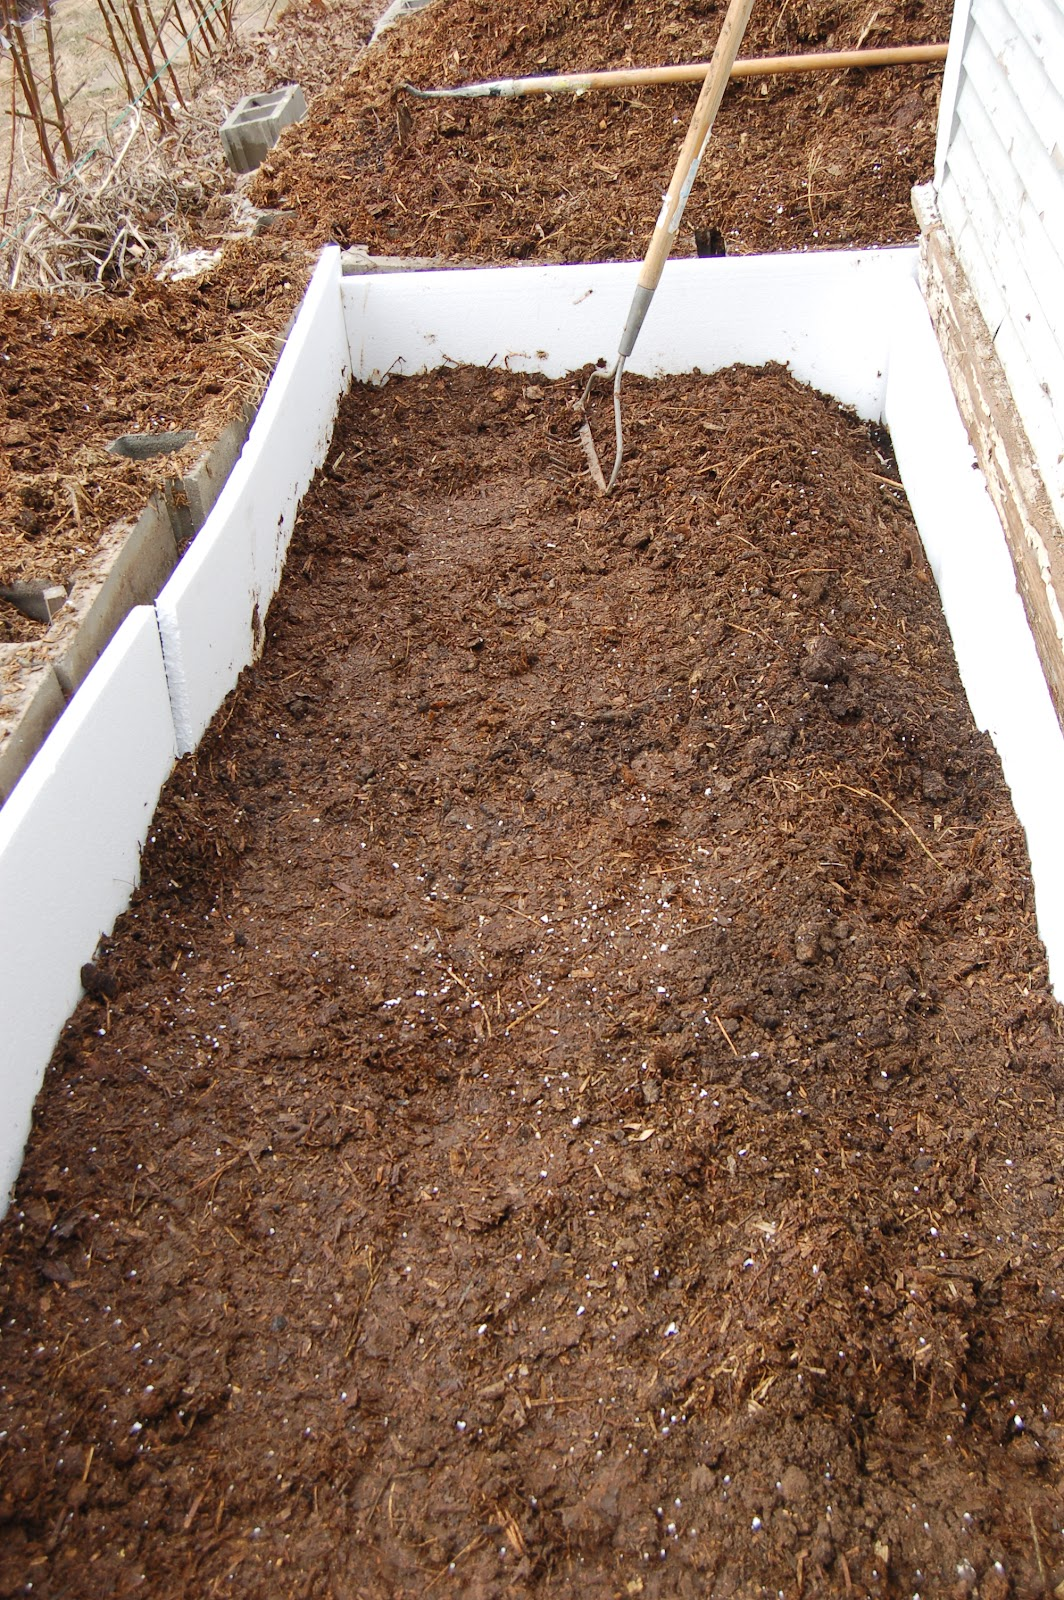 midwestern garden hotbed insulation and horse manure